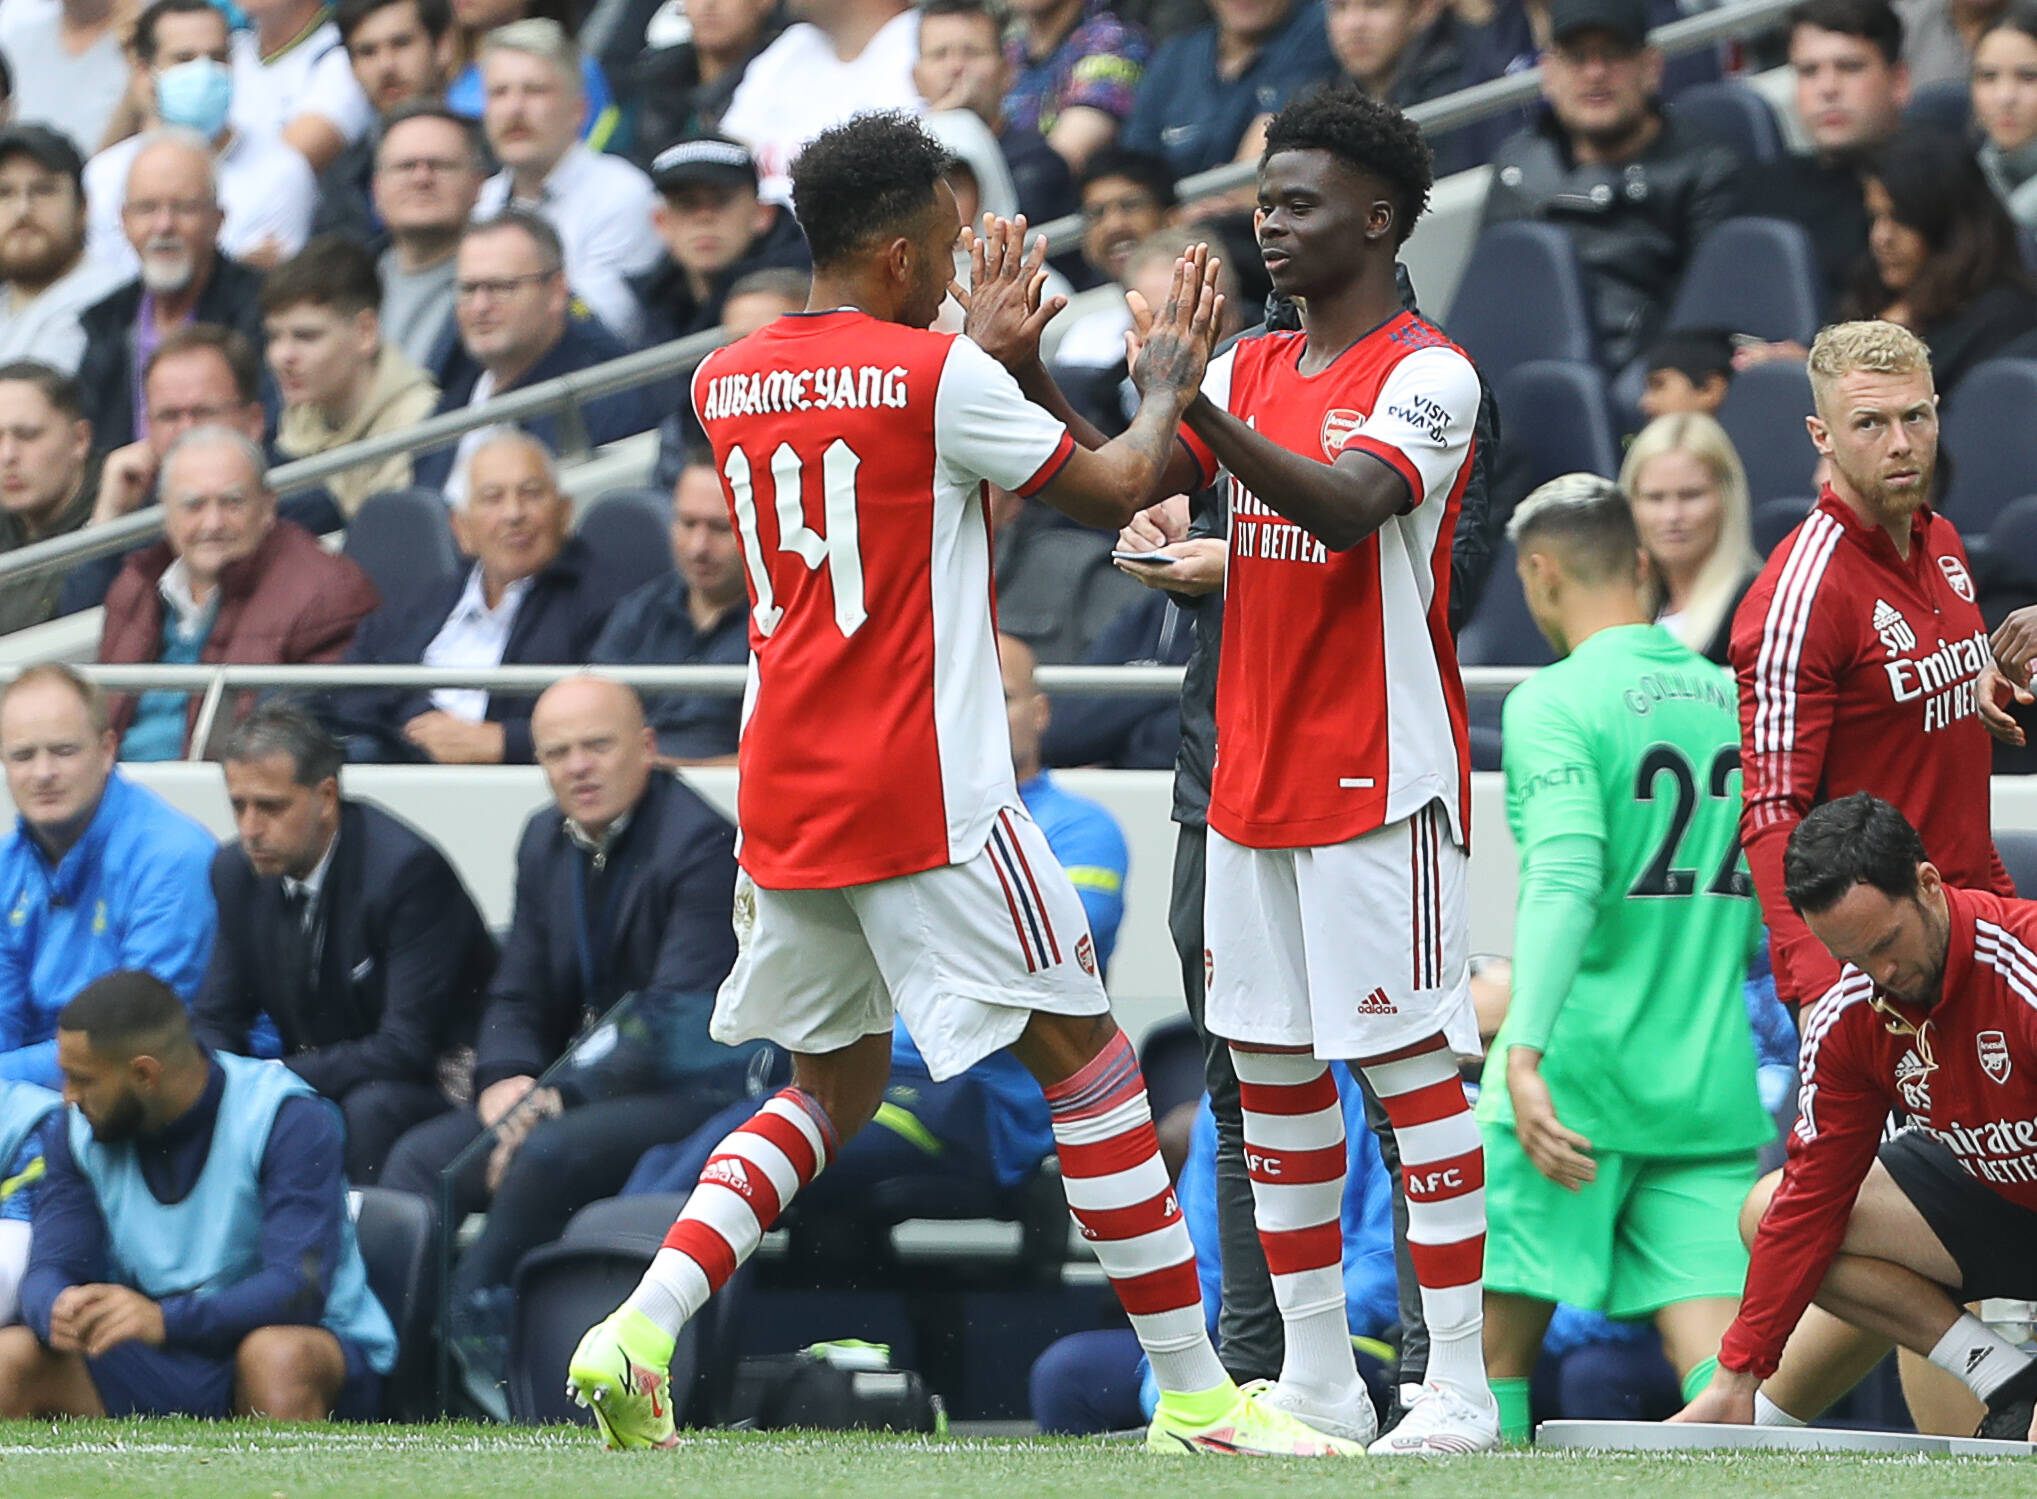 Bukayo Saka received a great reception from Tottenham Hotspur fans as Arsenal lost to Spurs in the Mind Game series pre-season friendly.